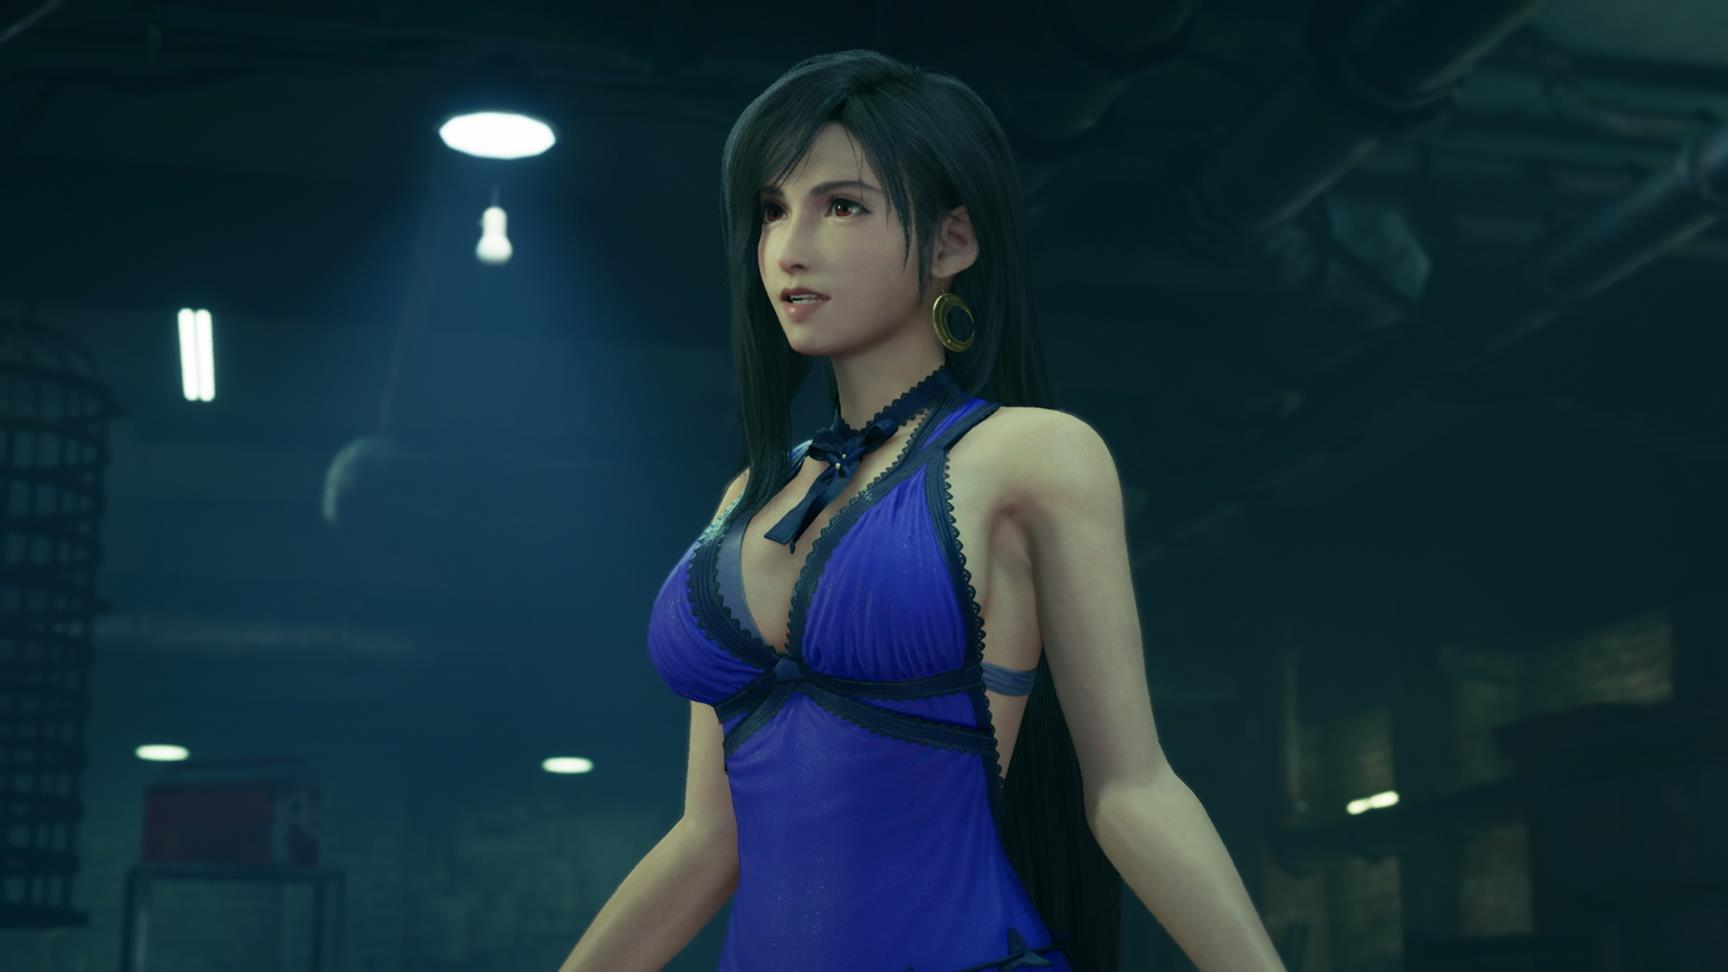 El trailer de Final Fantasy 7 Remake aparentemente confirma la versión para PC 23